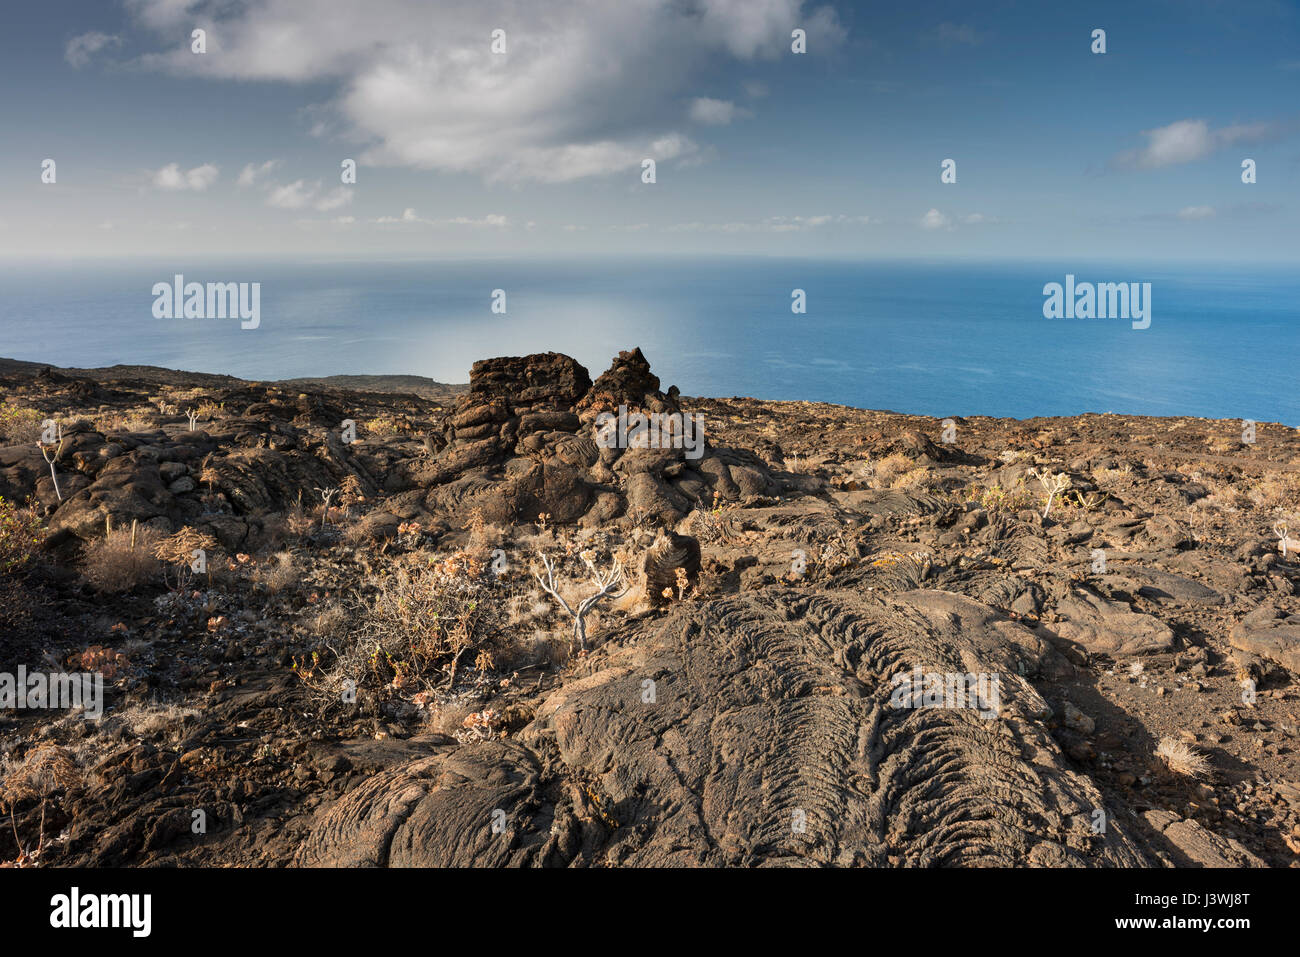 Pahoehoe or ropy basaltic lava flows at Tacoron on the south coast of El Hierro, Canary Islands, Spain - Stock Image